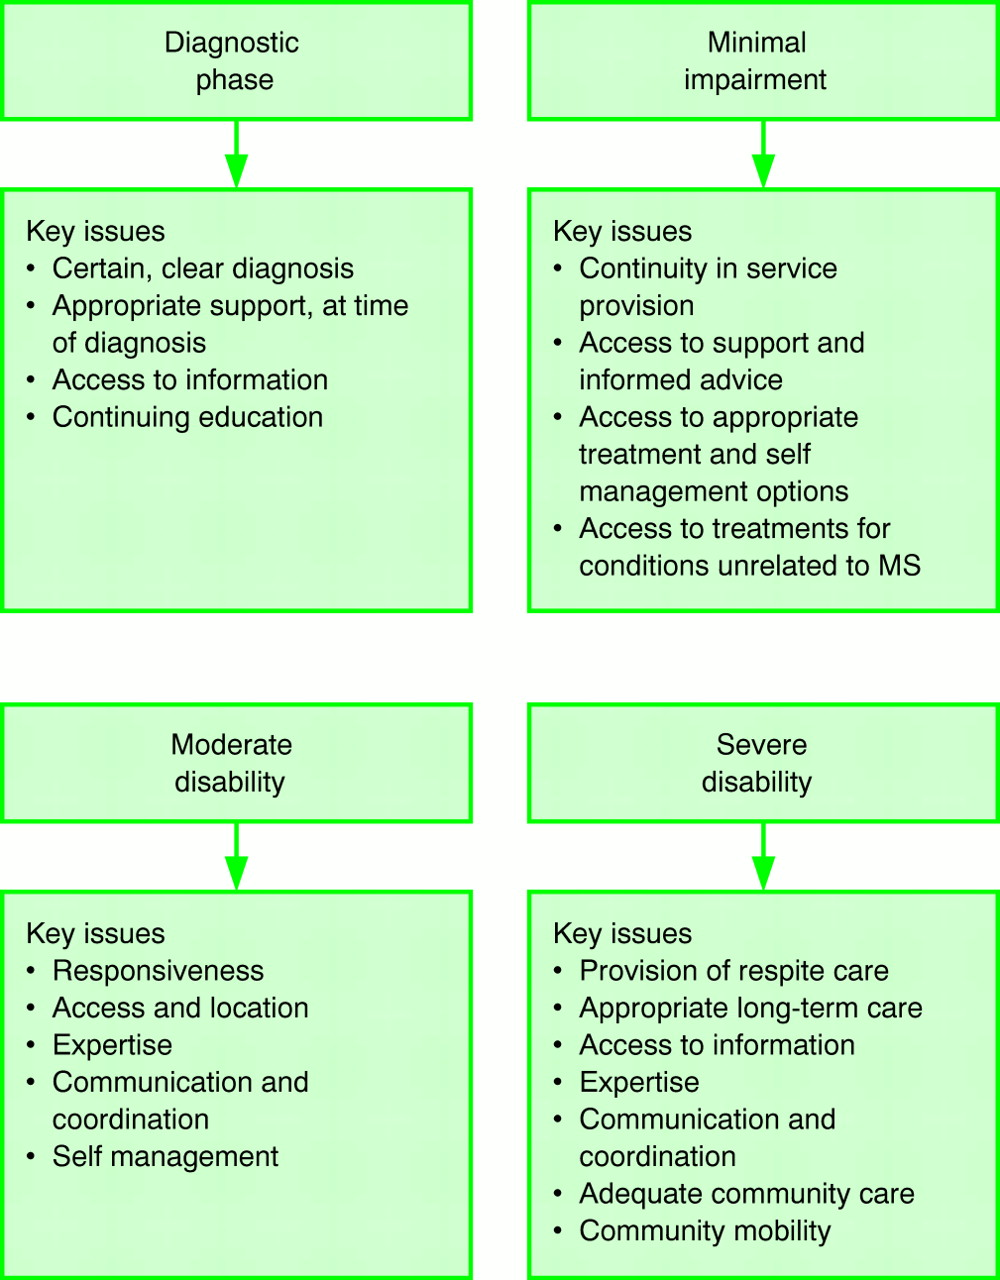 SYMPTOMATIC MANAGEMENT AND REHABILITATION IN MULTIPLE